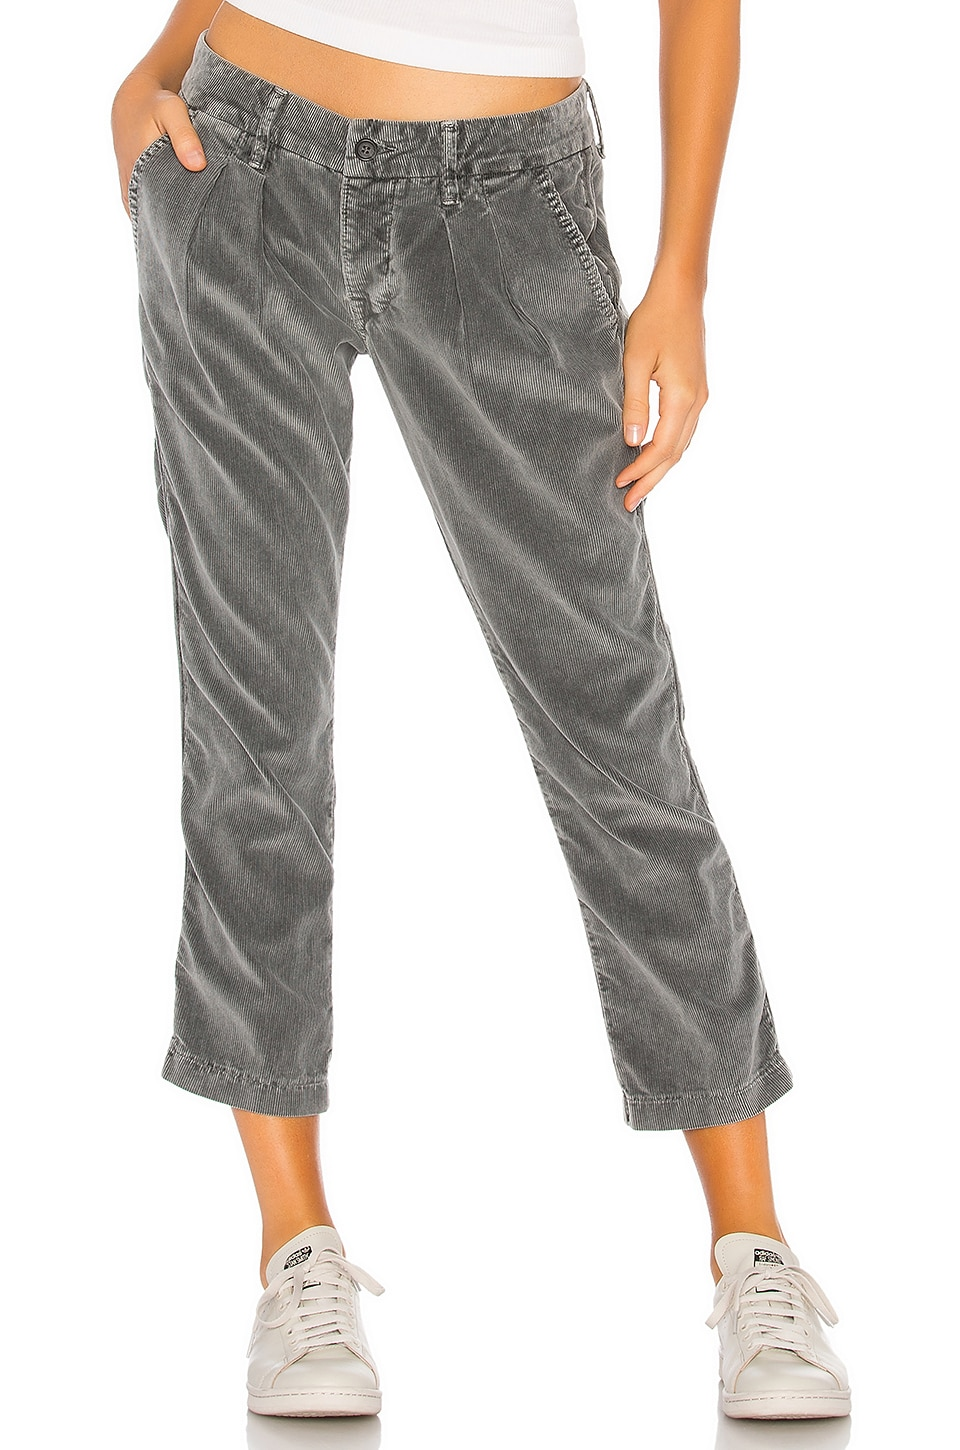 NSF Tuxedo Corduroy Pleated Trouser in Pigment Shade